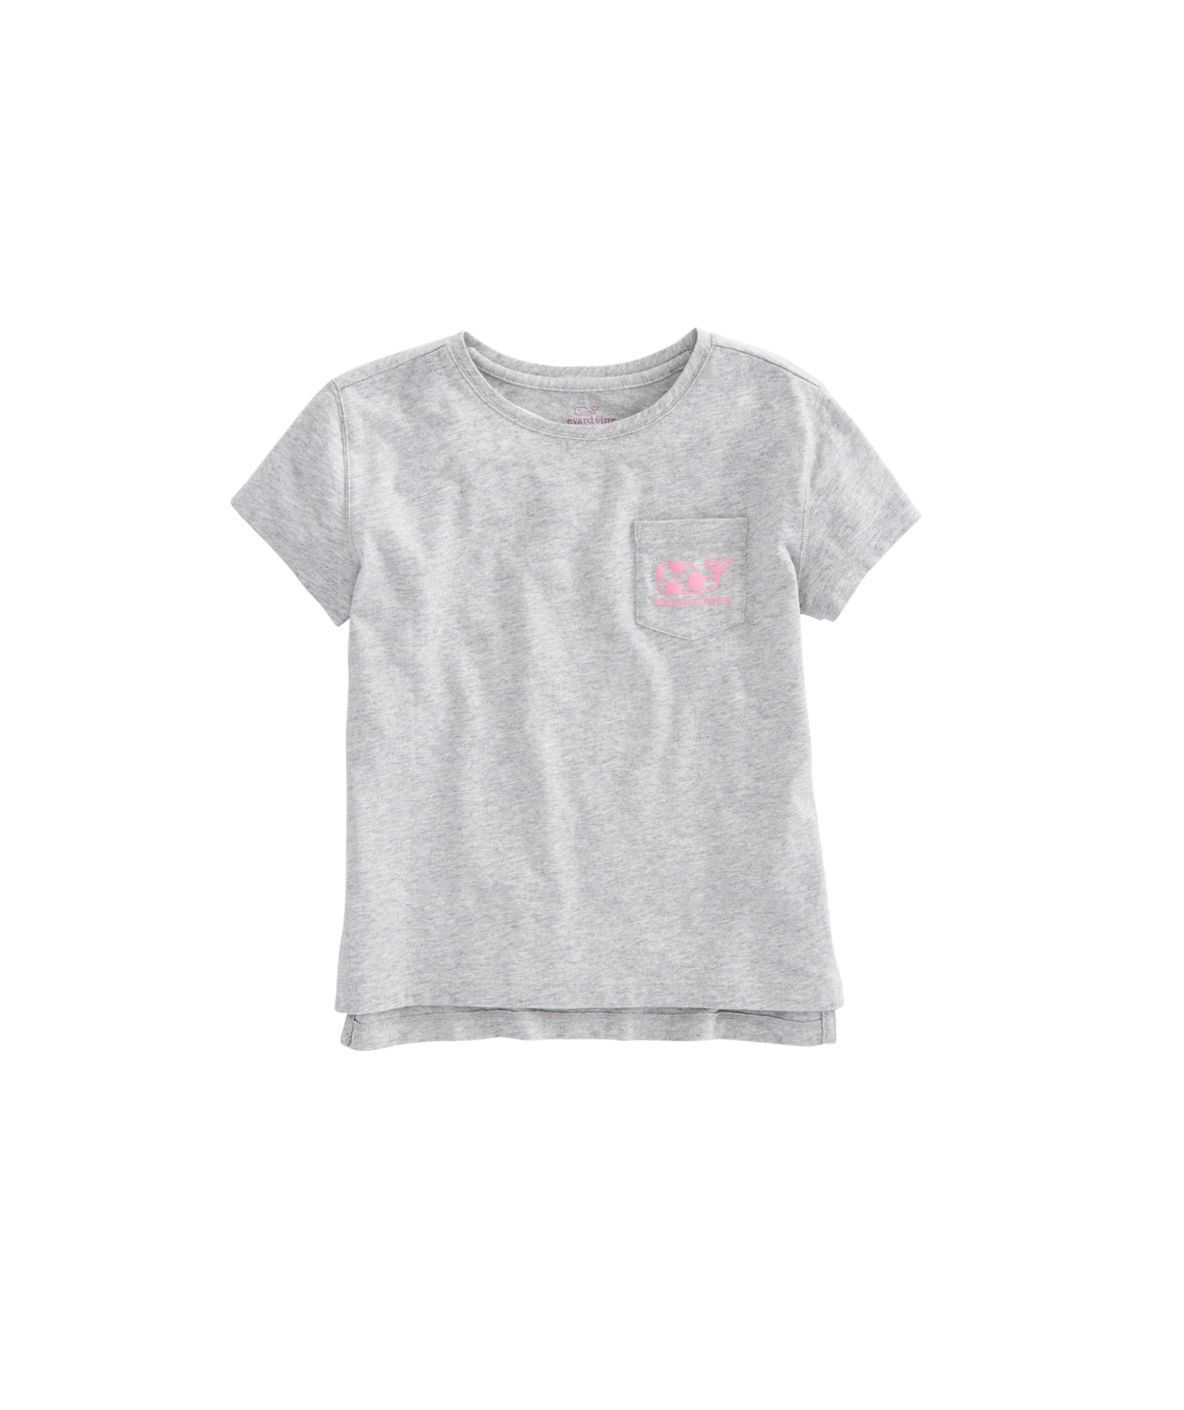 Vineyard Vines Girls S//S White Cap Simple Whale Tail Graphic T-Shirt